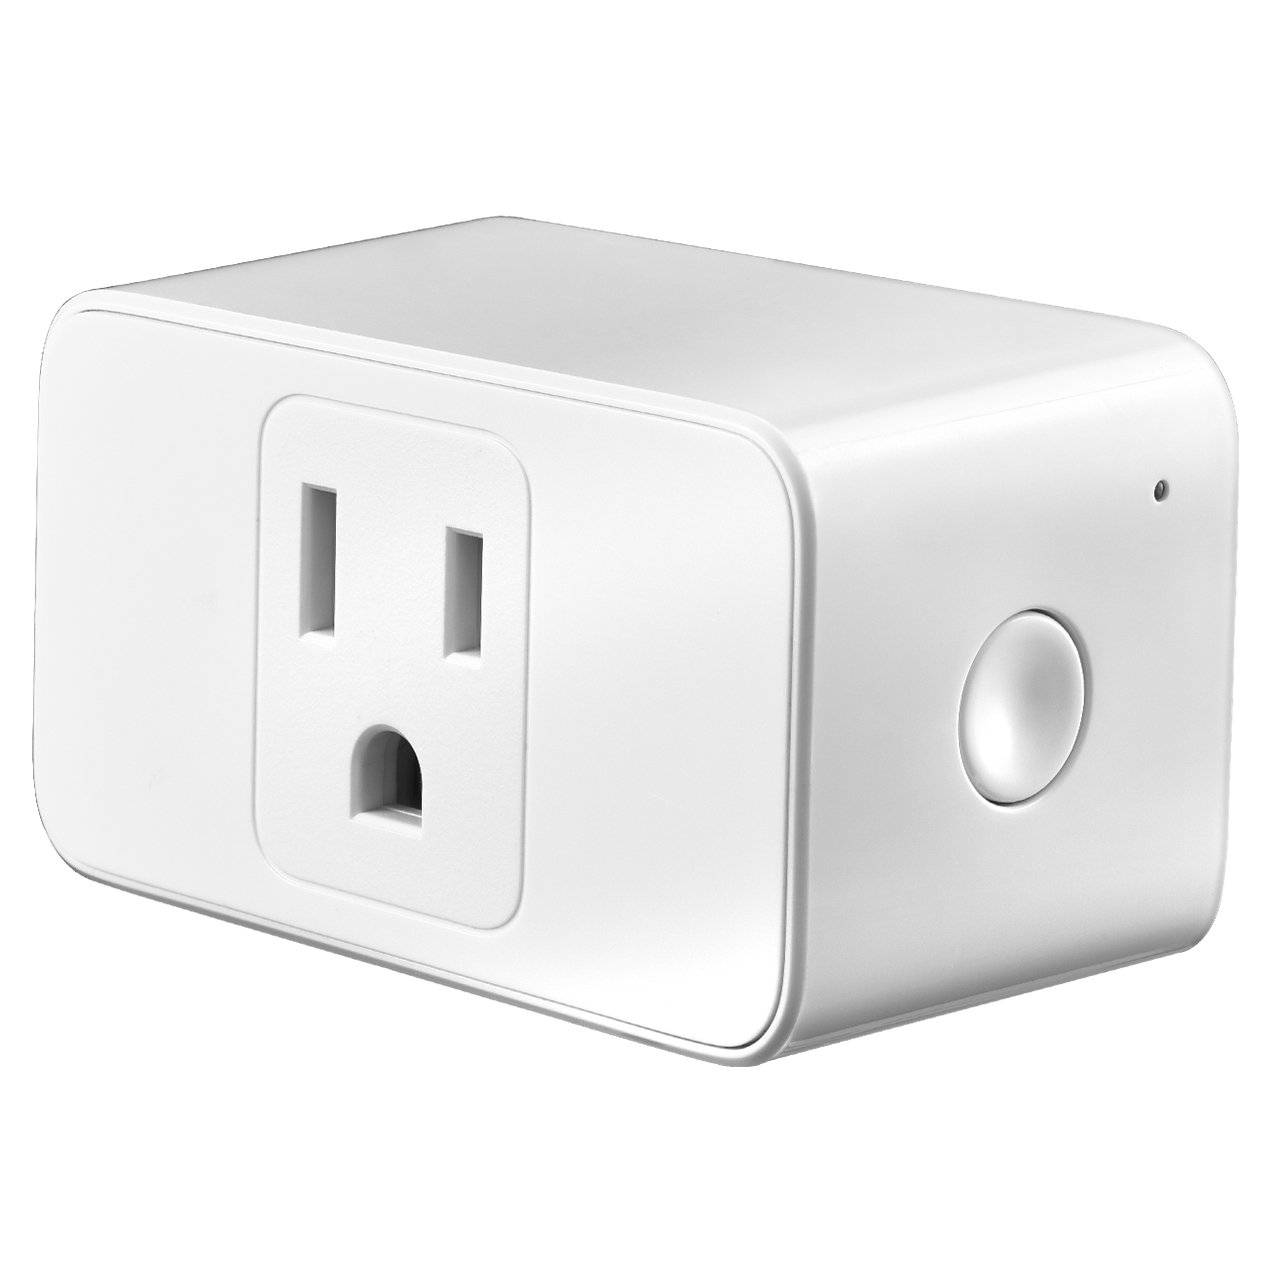 Meross WiFi Smart Plug, Mini Smart Plug Socket Outlet Compatible with Alexa and Google Assistant, Easy to Set Up, App Control from Anywhere, Timer Function, No Hub required, Occupy Only One Socket